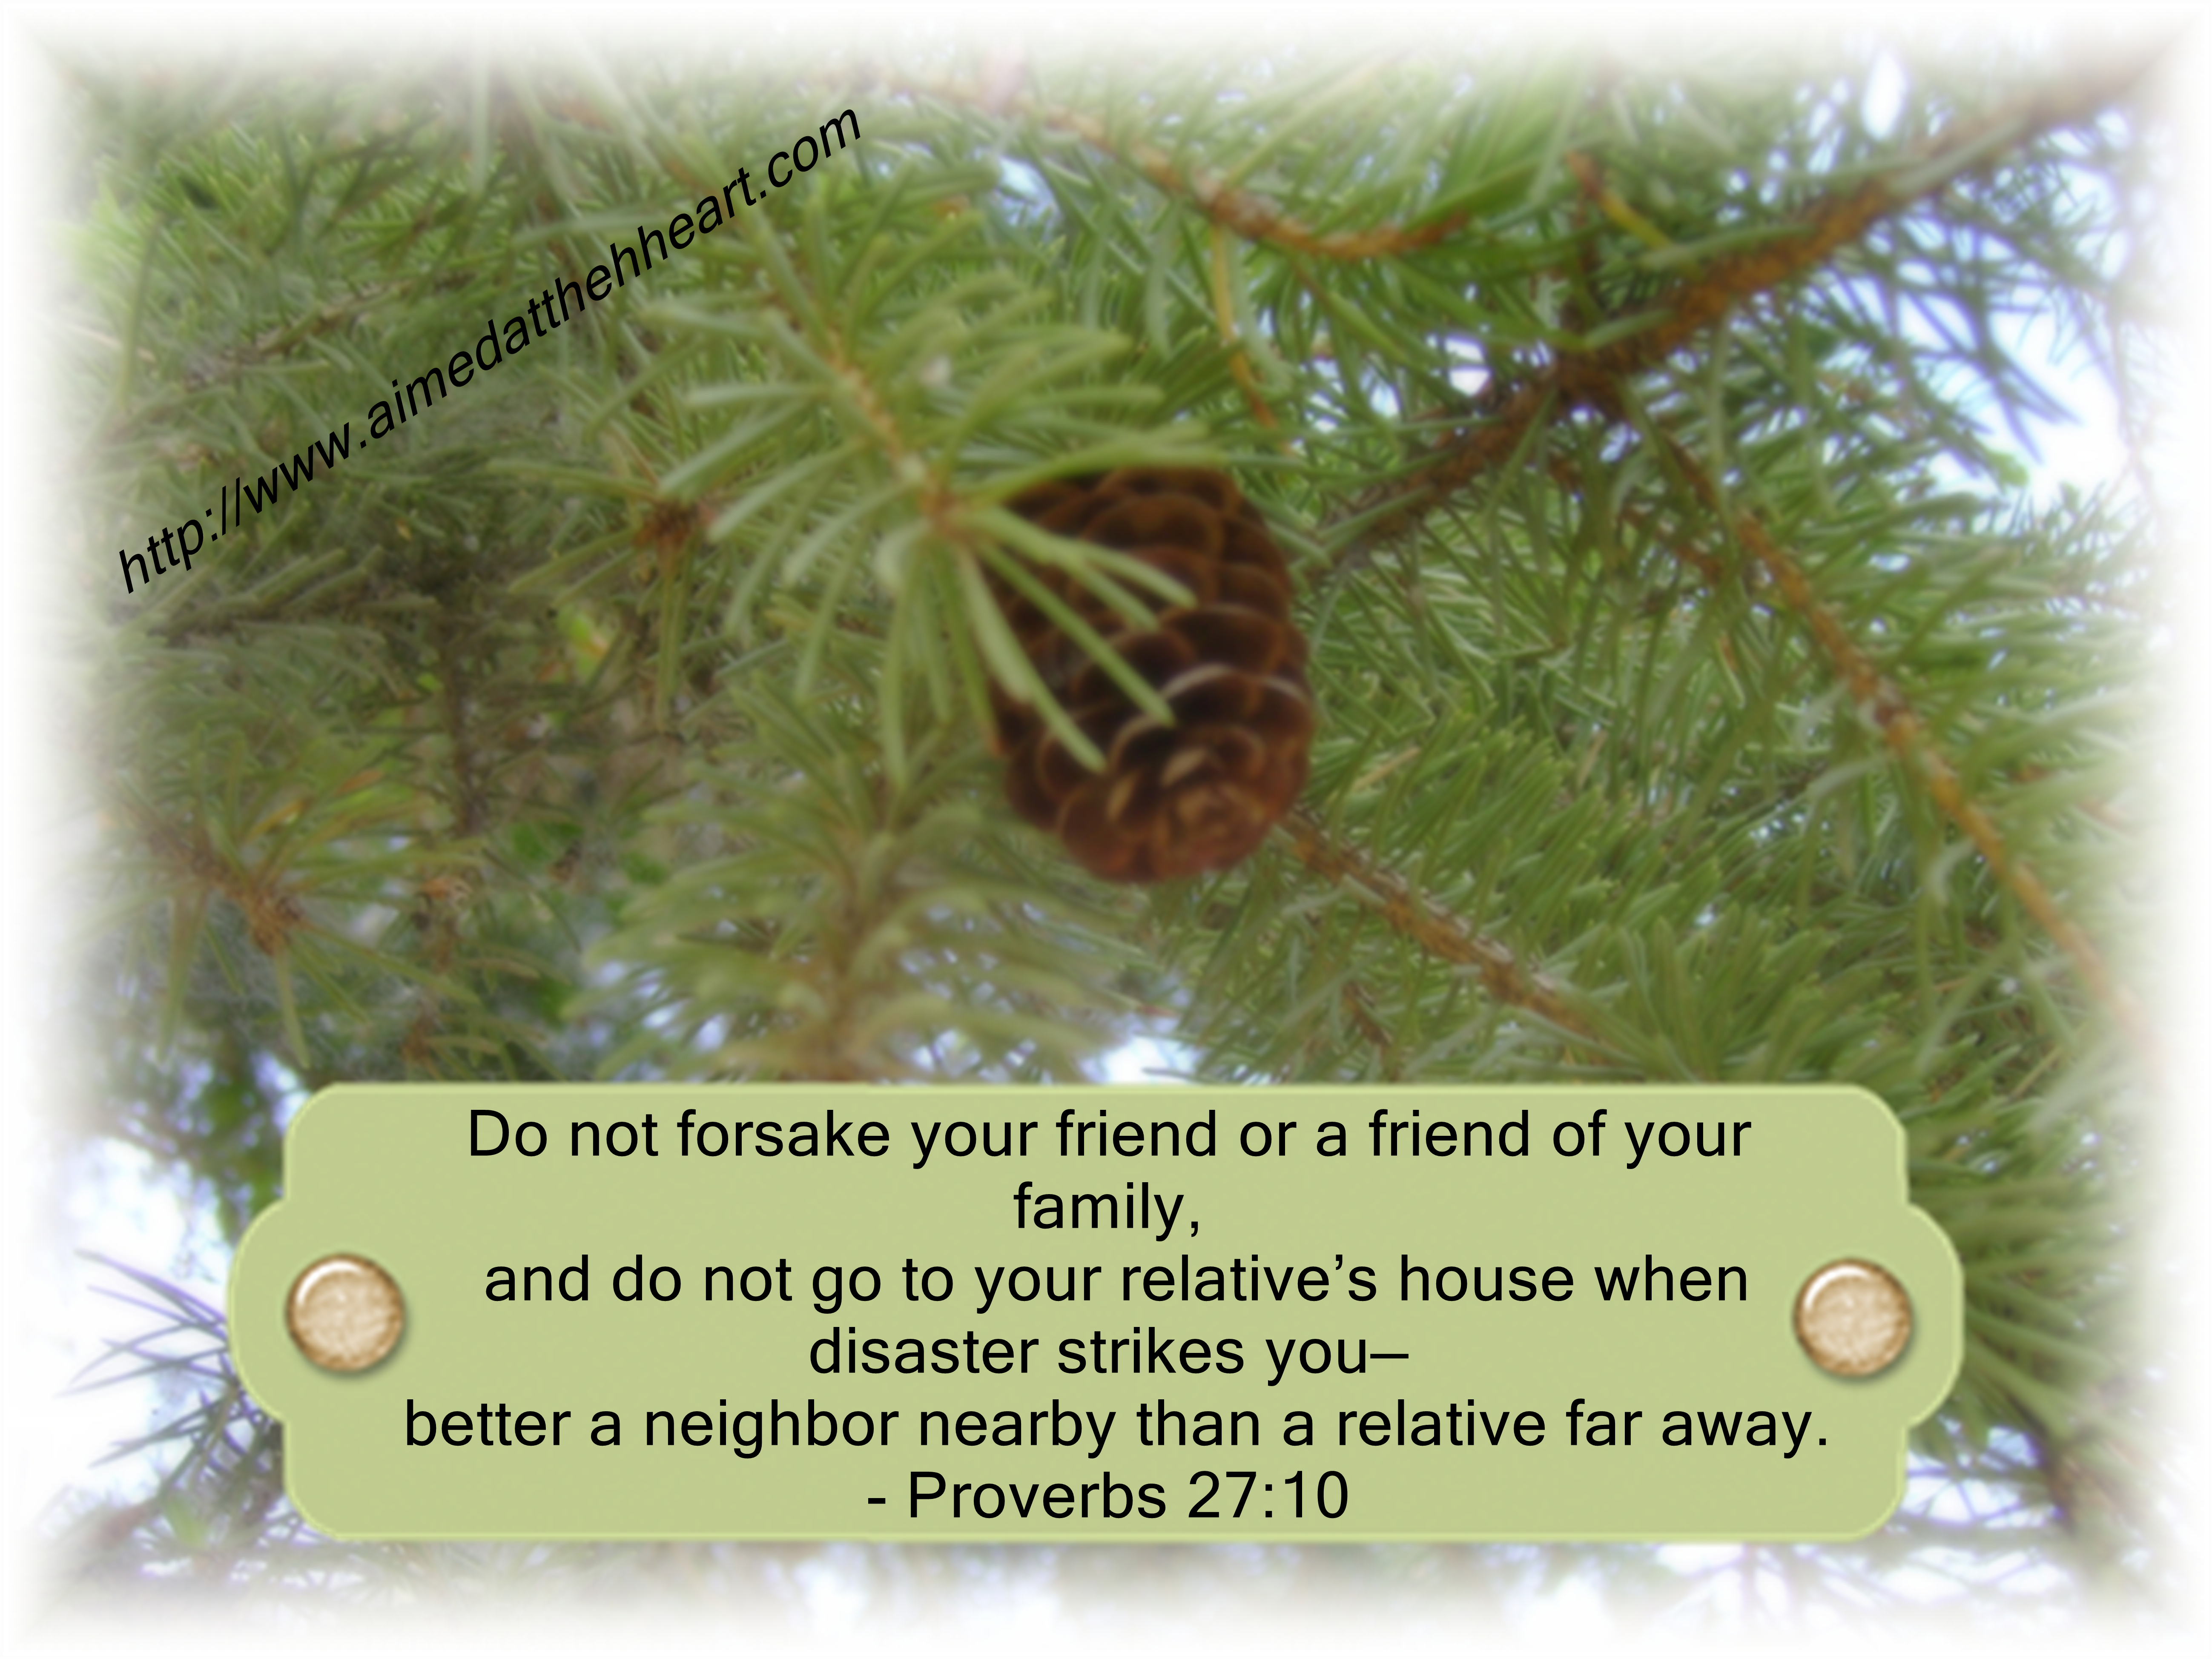 proverbs 27:10 importance of support